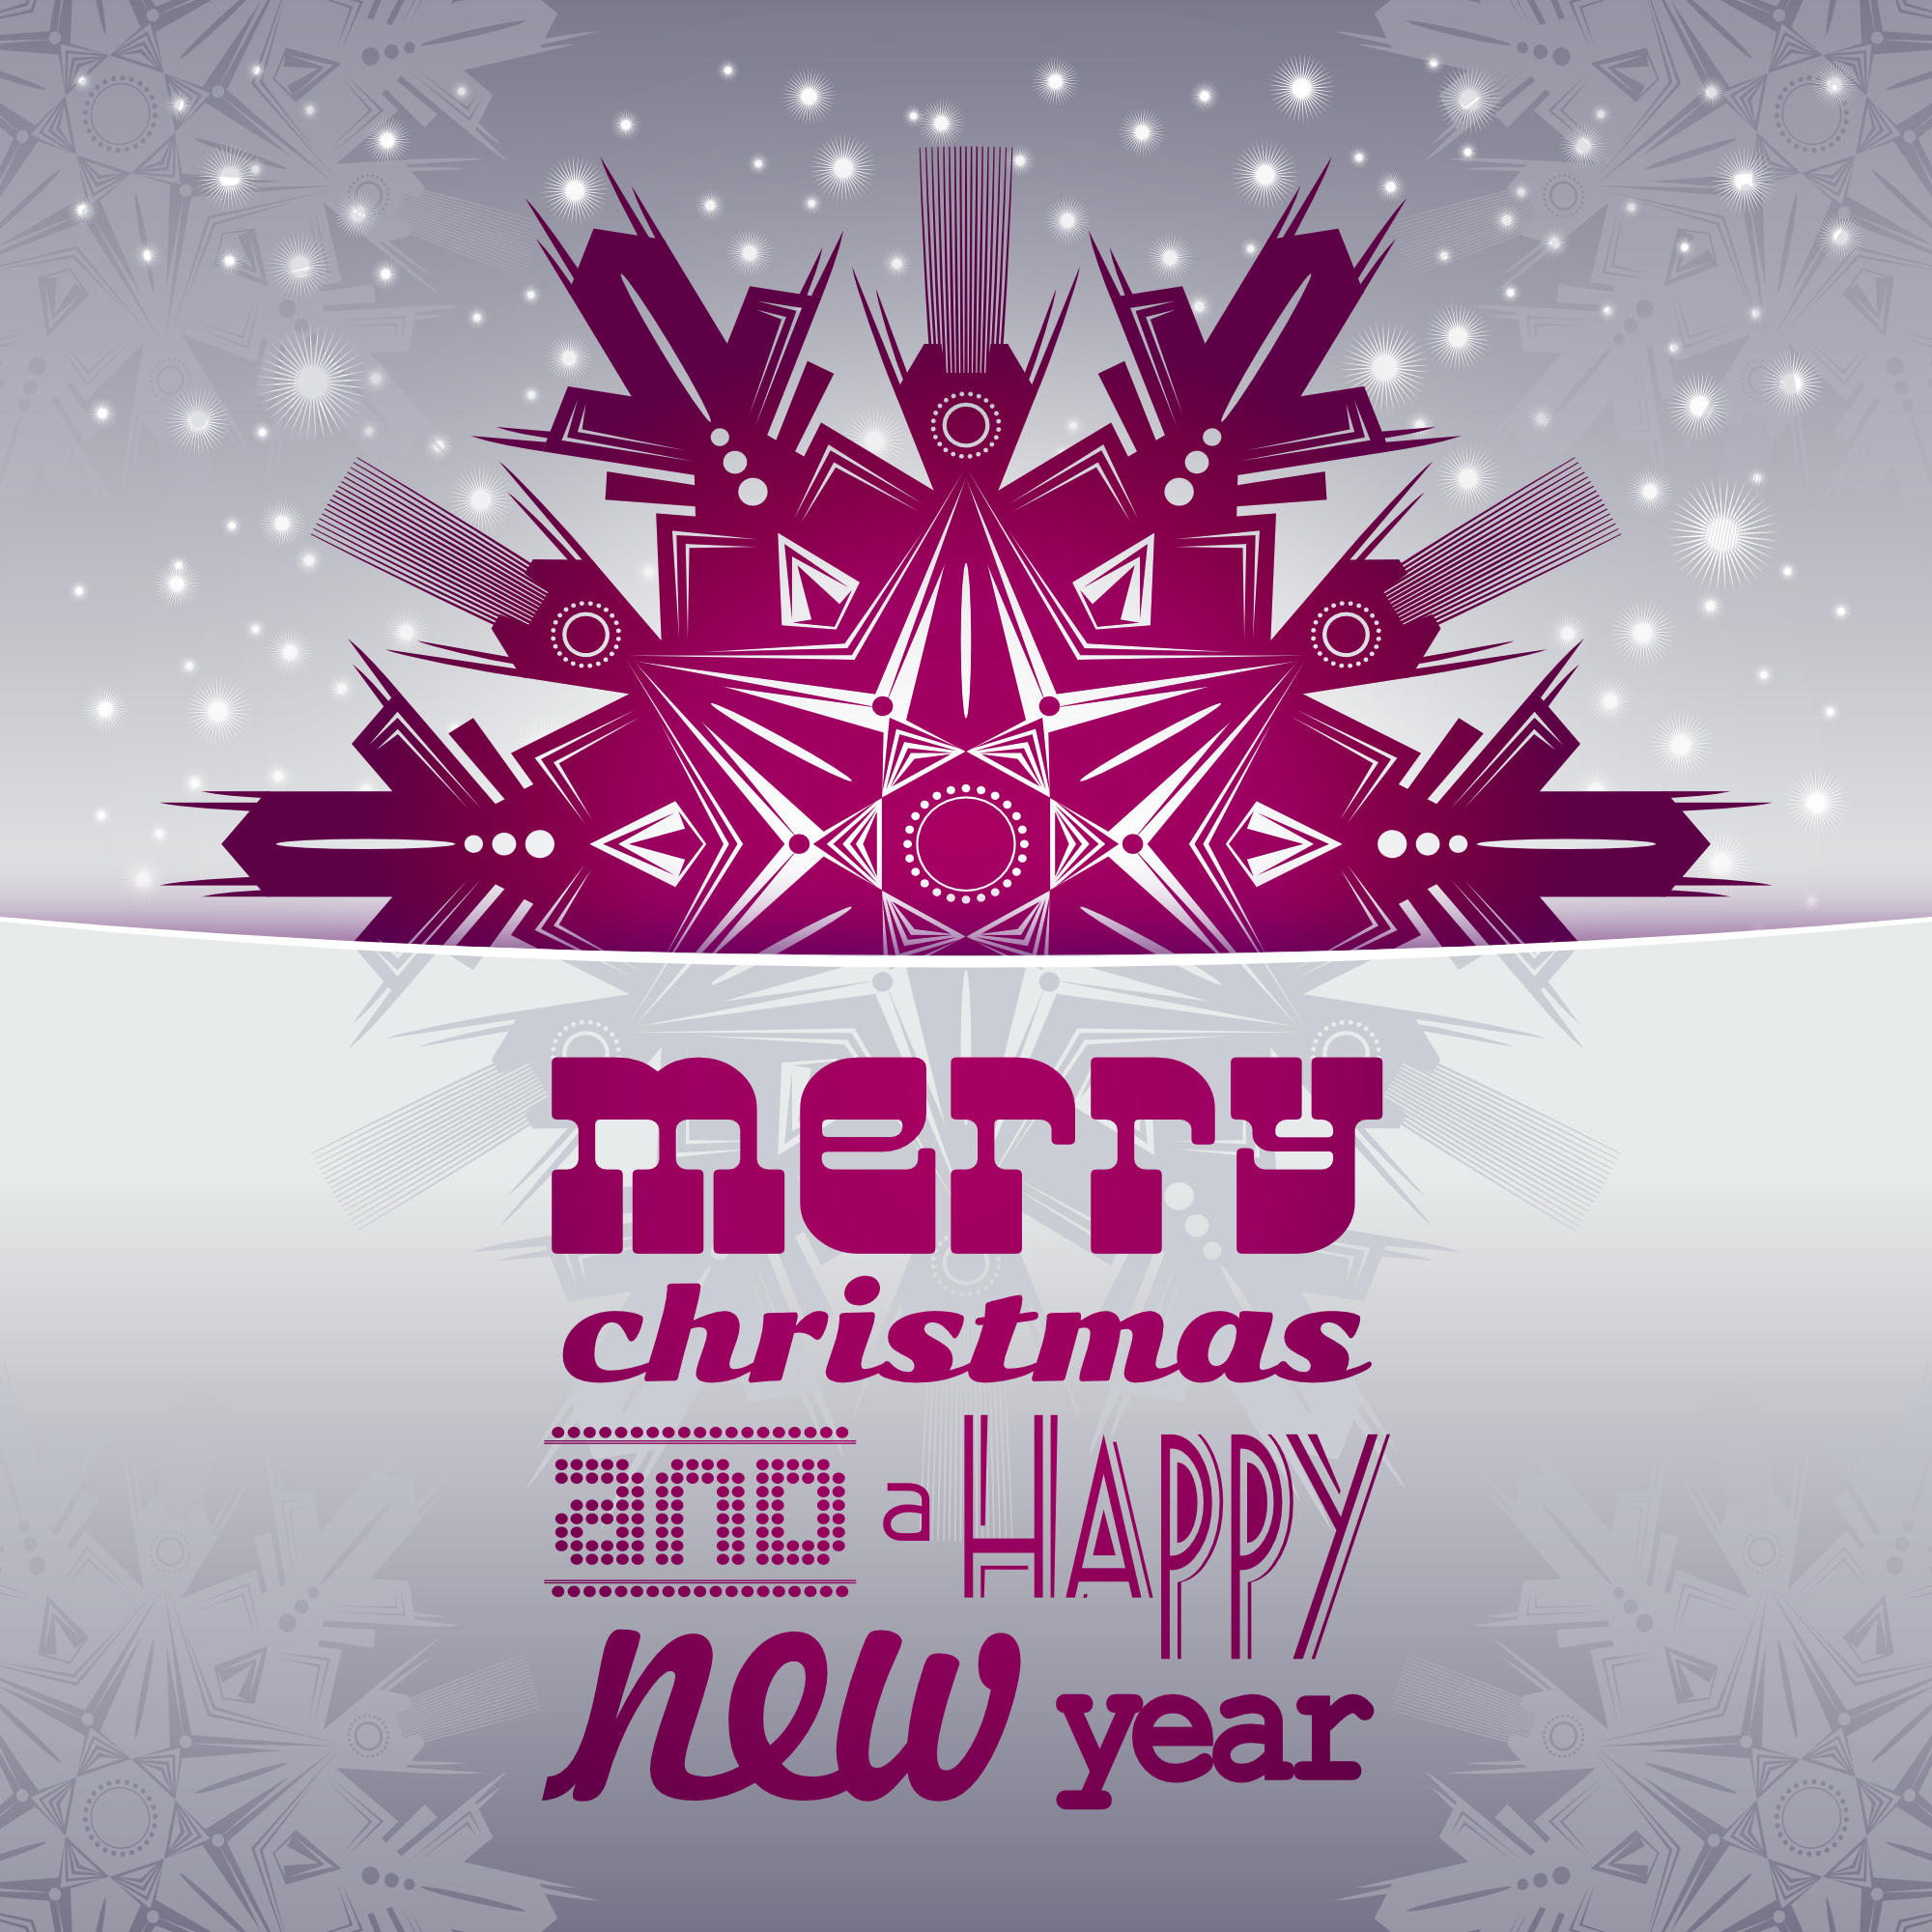 File:Merry Christmas and Happy New Year 1.png - Wikimedia Commons